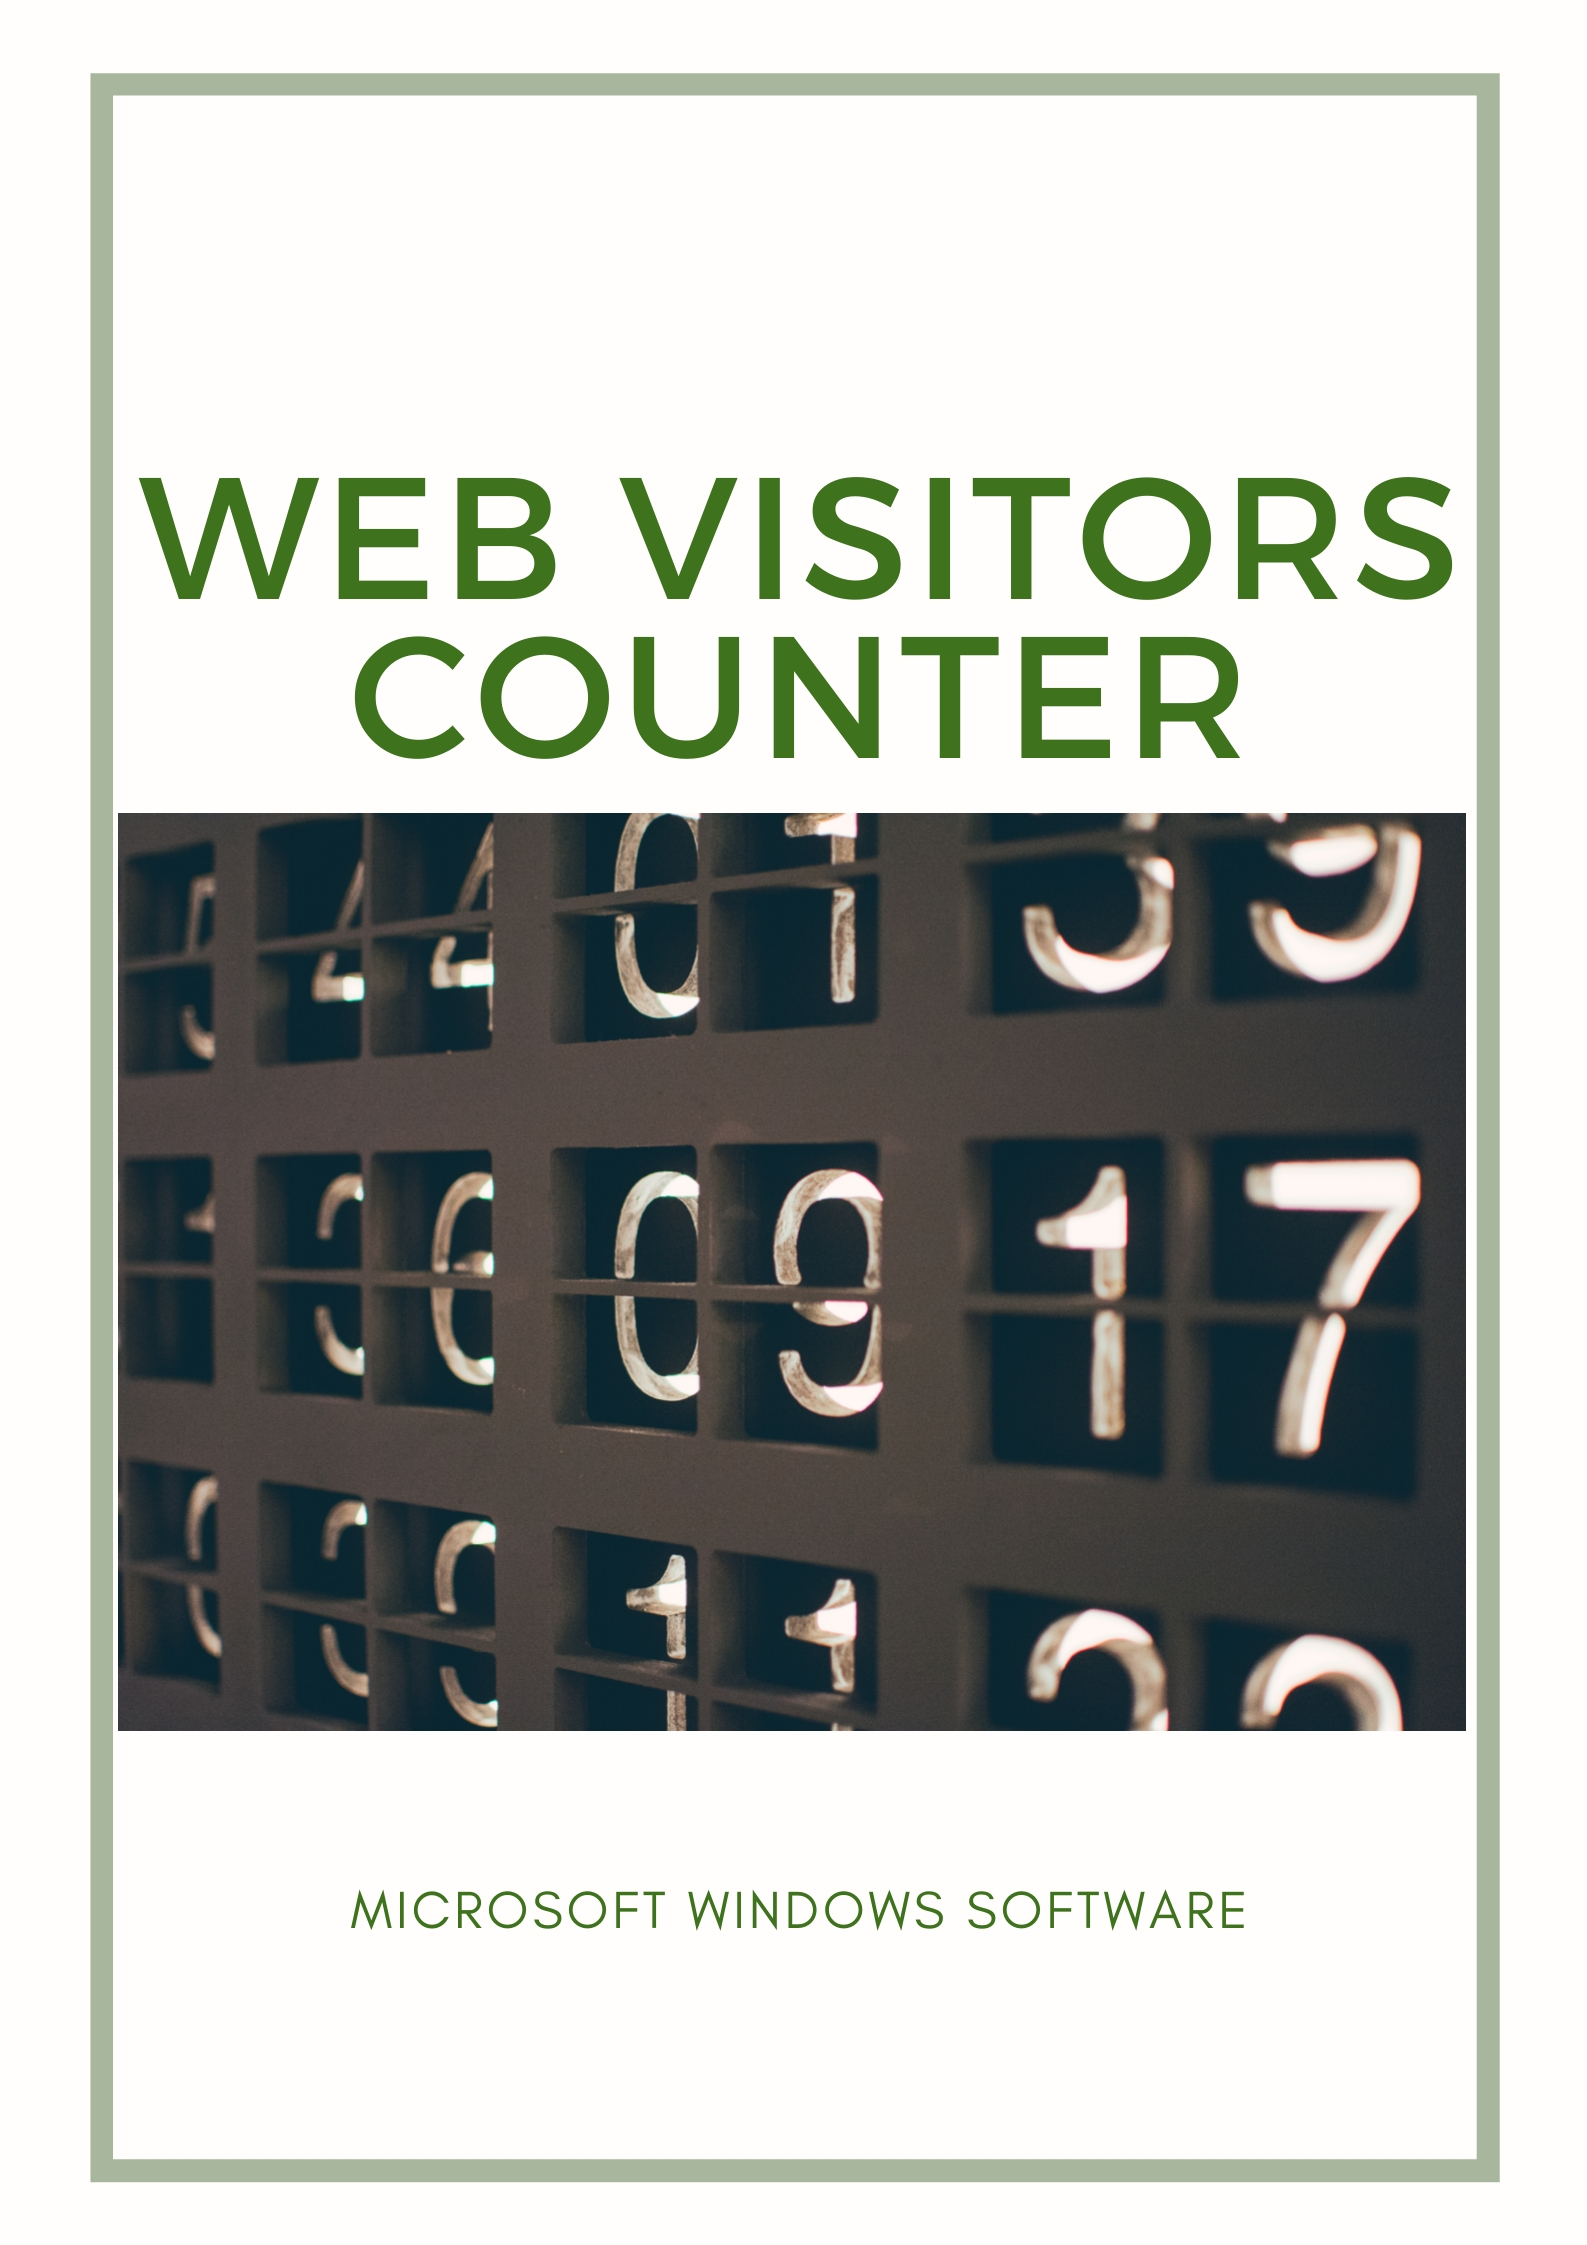 Easy web visitor counter for your website